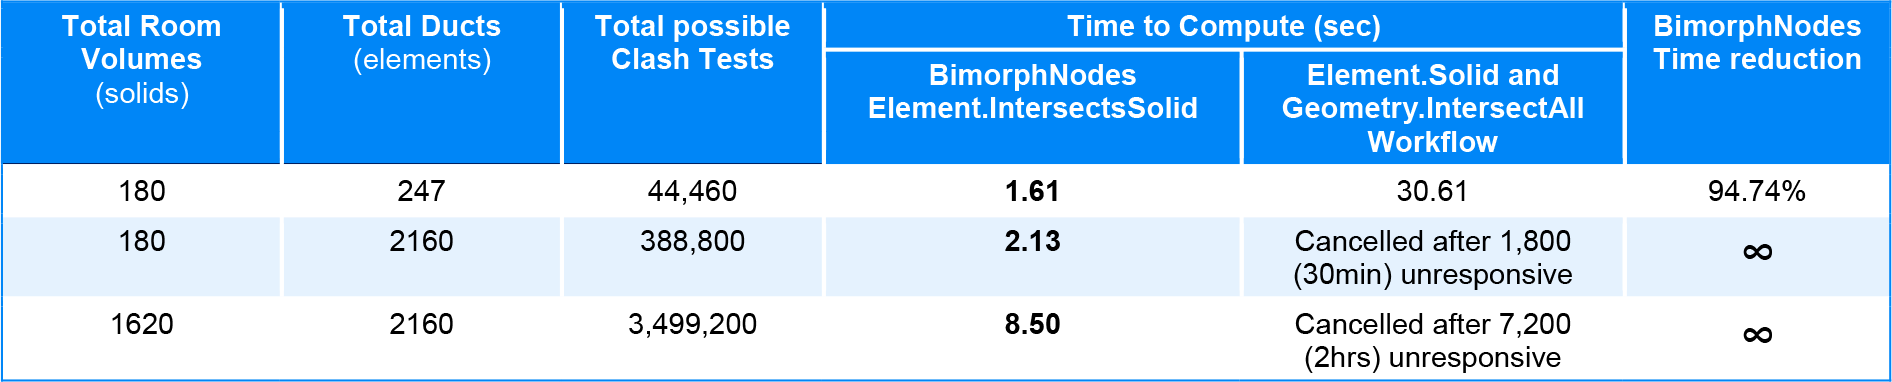 Element Intersects Solid Bimorph Nodes v2.1 Dynamo BIM for Revit Performance Benchmark